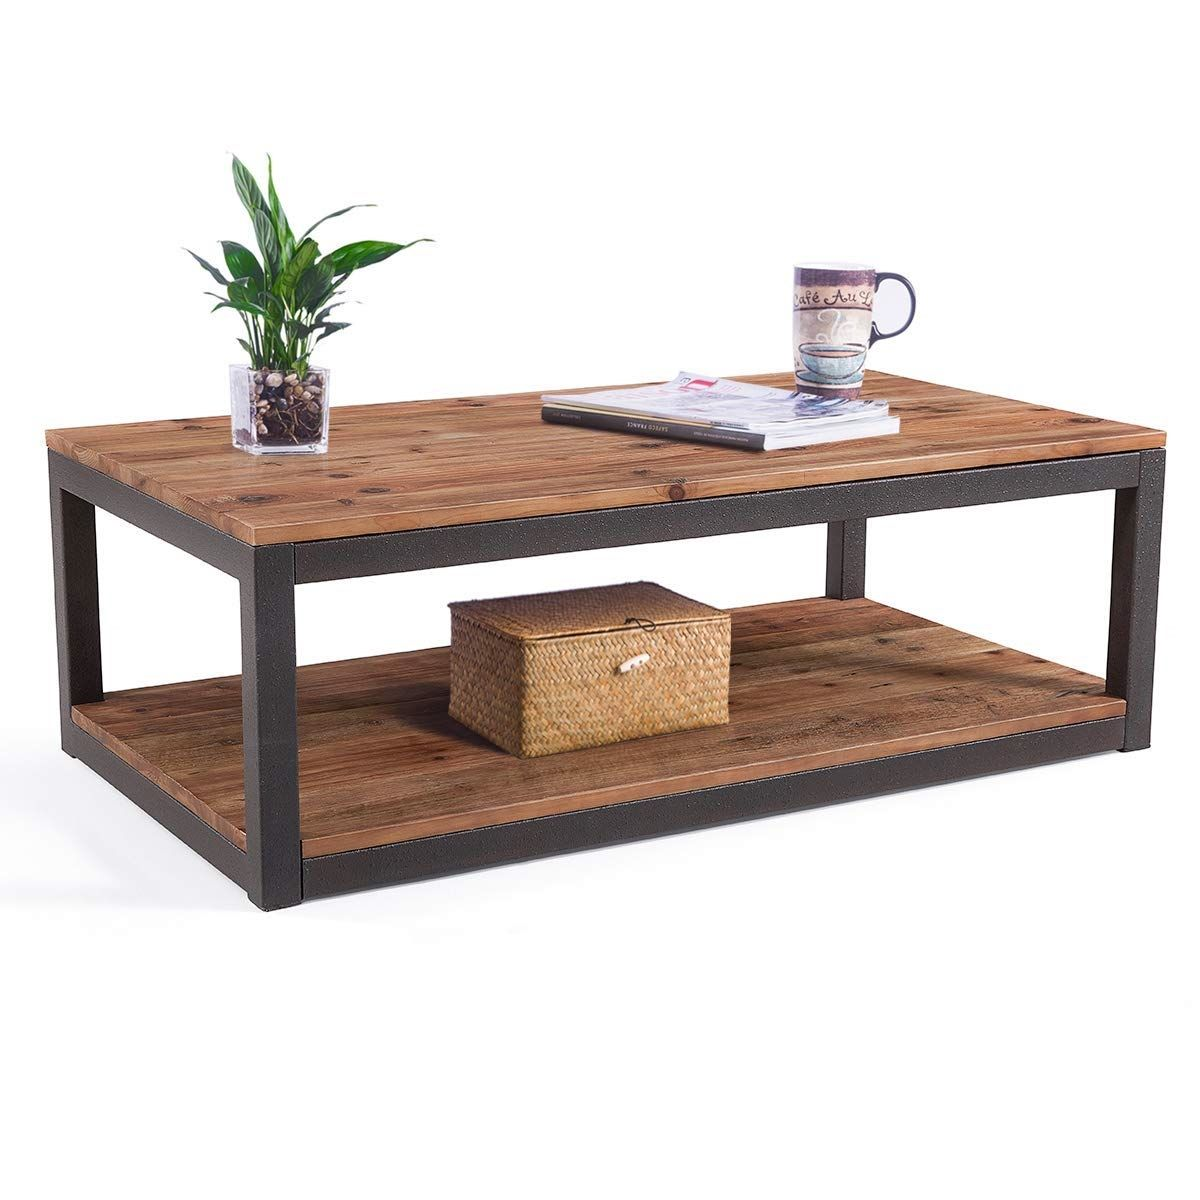 Emerald Home Chandler End Table Wooden Coffee Table Metal Legs Coffee Table With Metal Legs Alaterr Coffee Table Farmhouse Coffee Table Wood Coffee Table